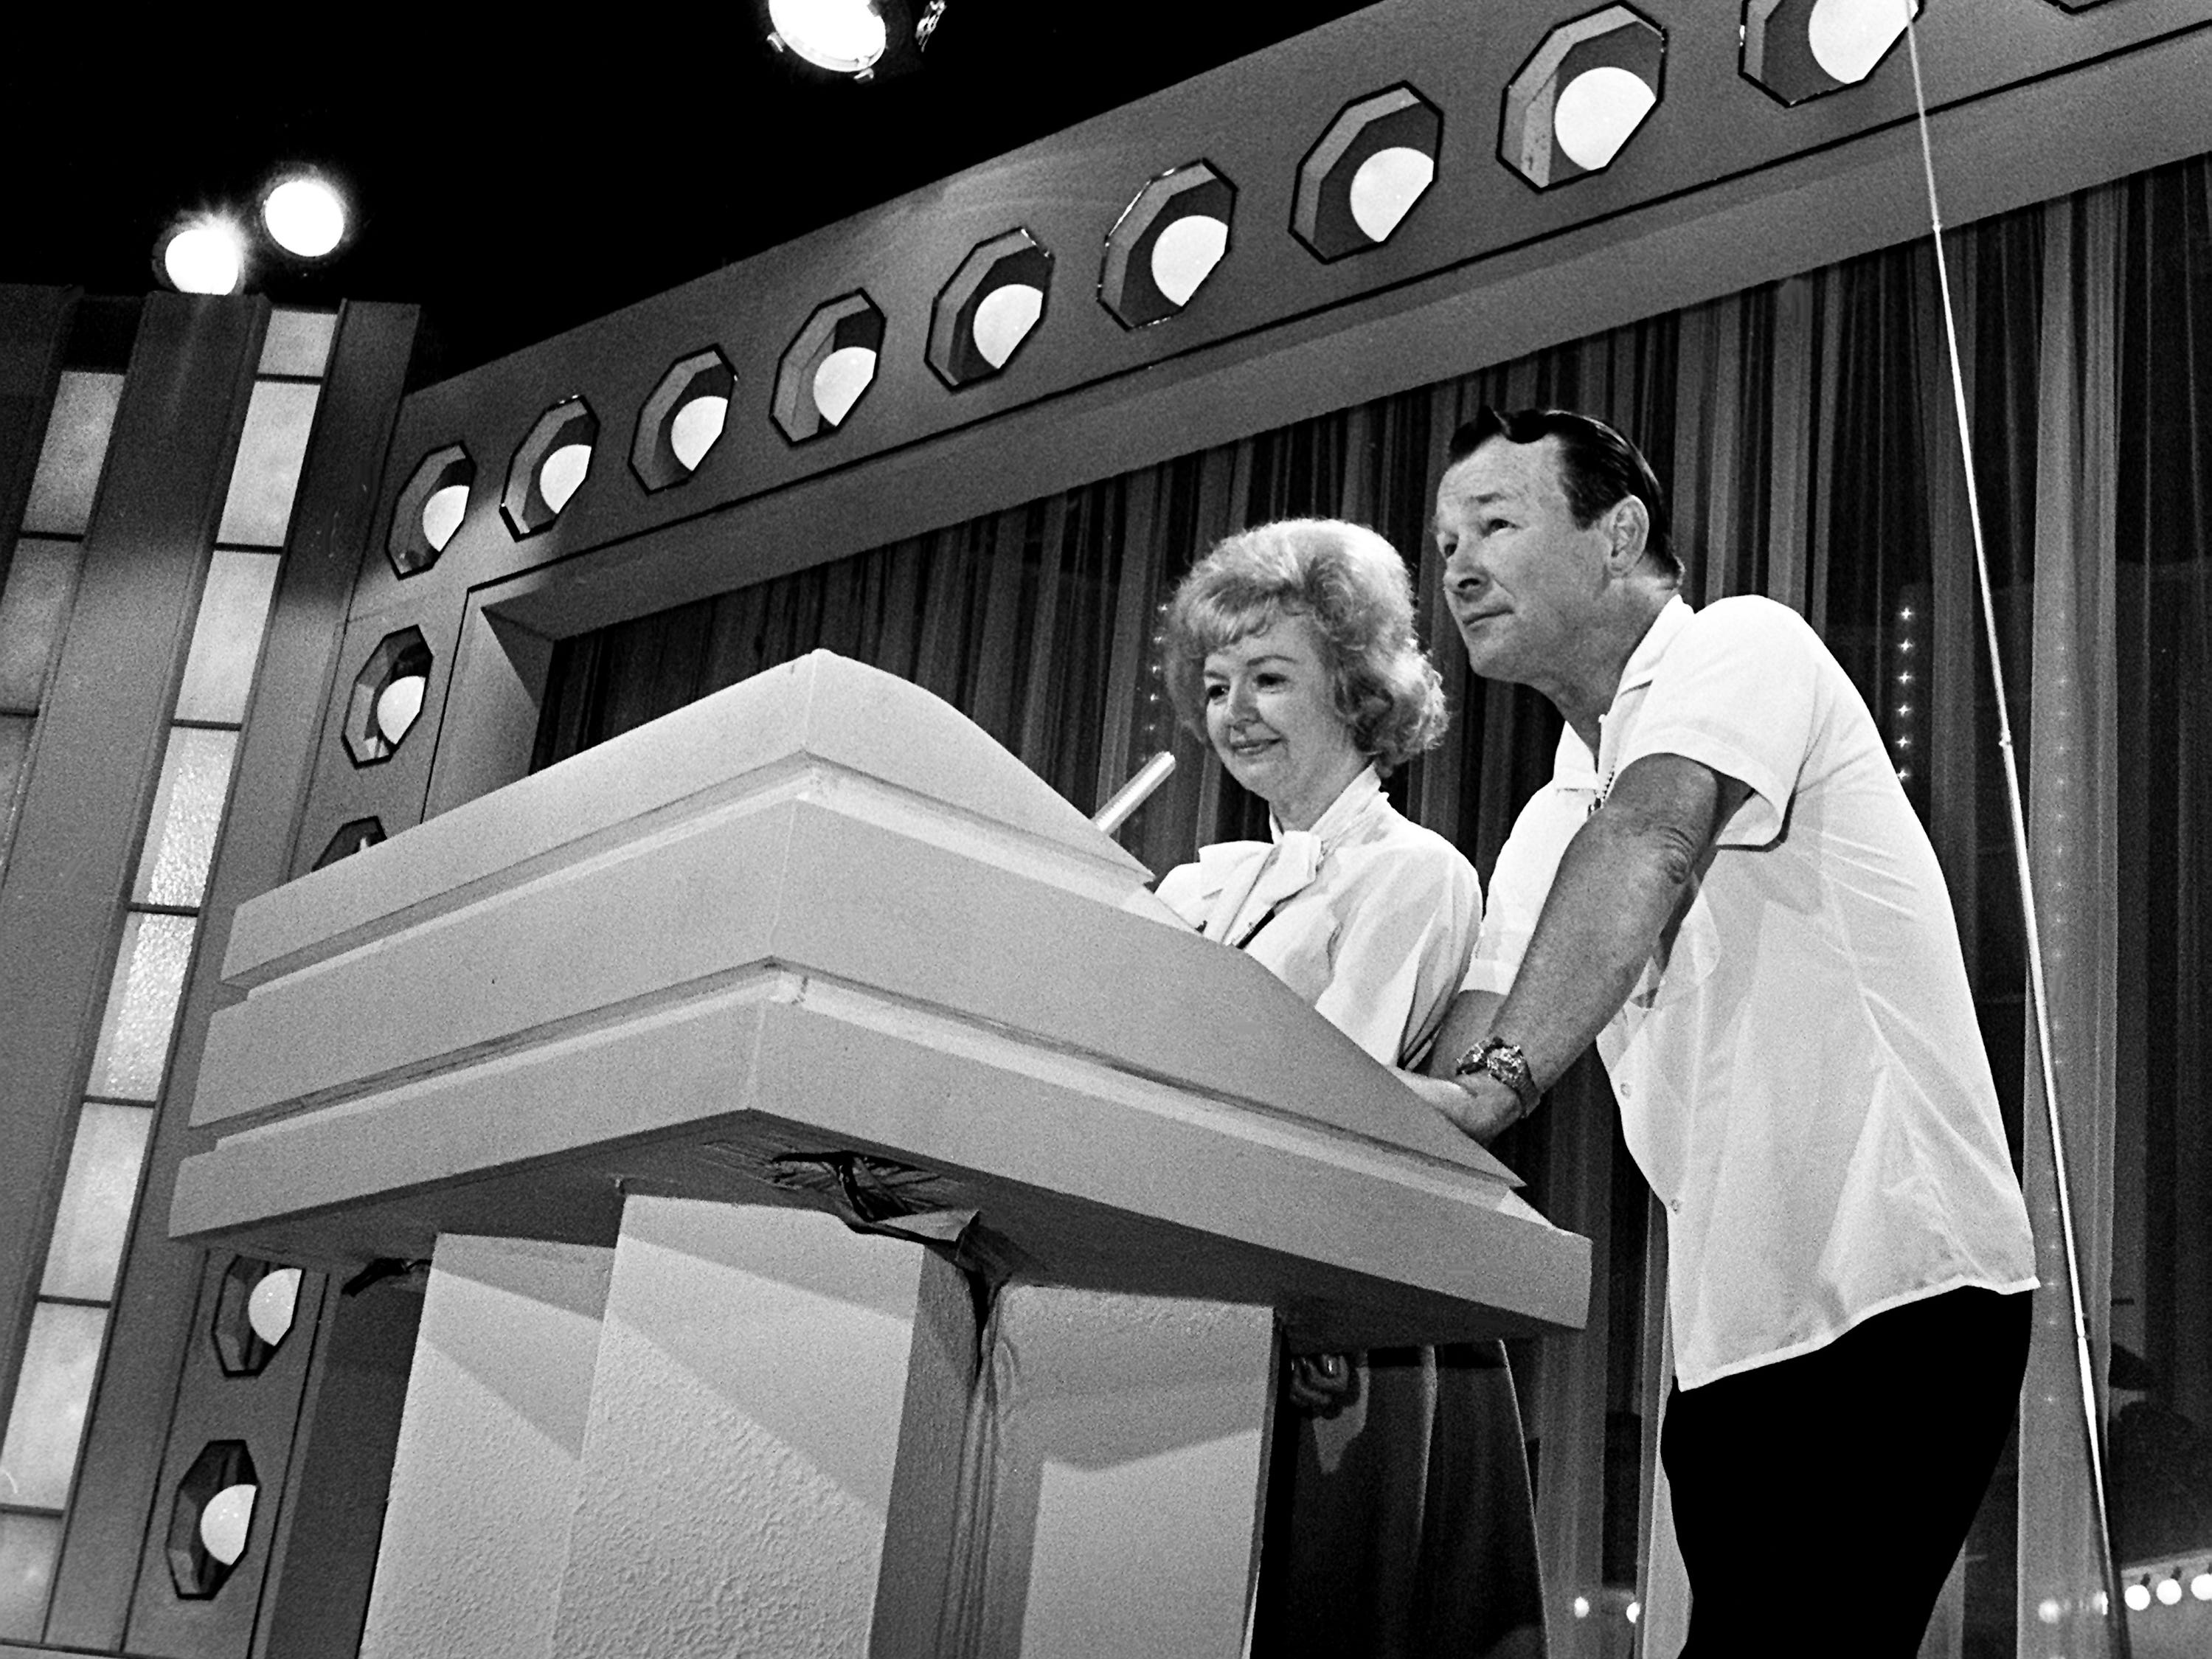 Emcees Roy Rogers and his wife, Dale Evans, practice during rehearsal at the Grand Ole Opry on Oct. 18, 1968, for that night's CMA Awards show.